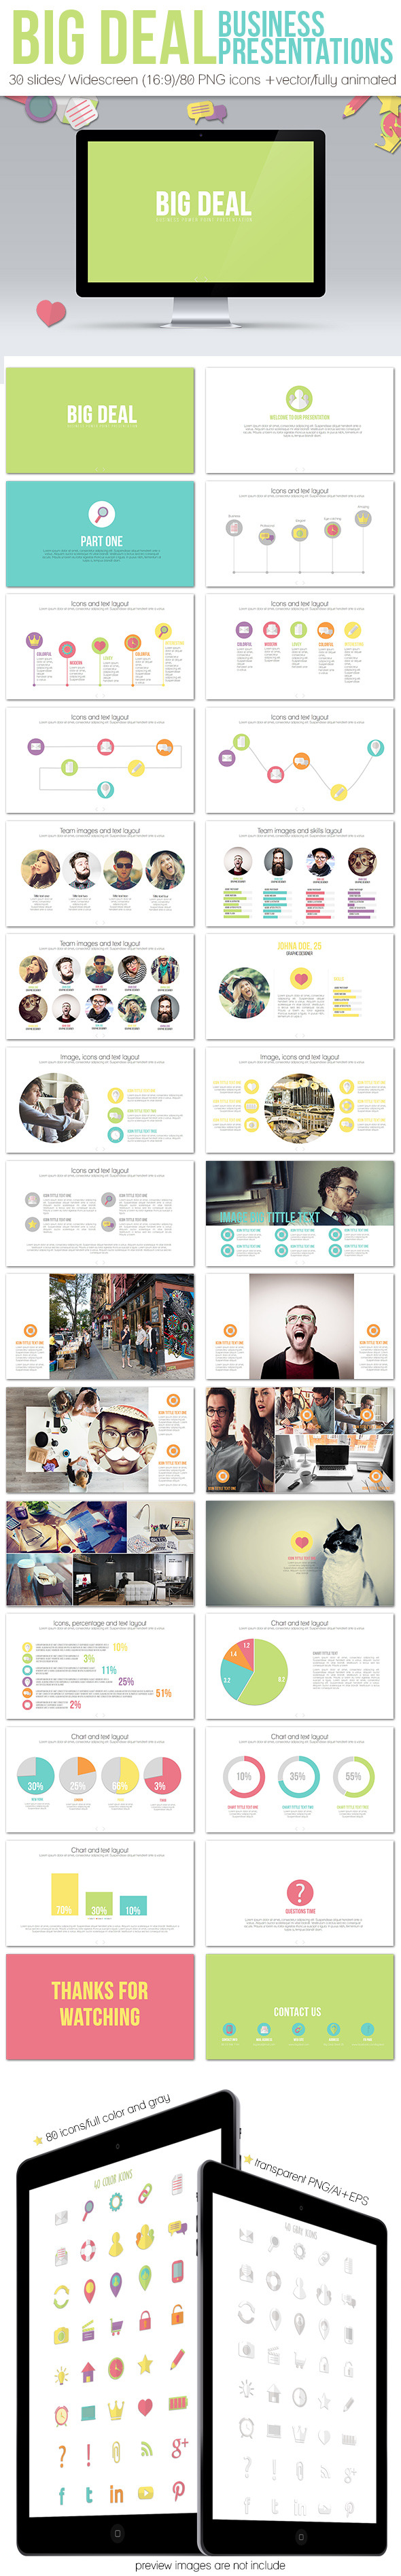 GraphicRiver Big Deal Business Presentation 11312377